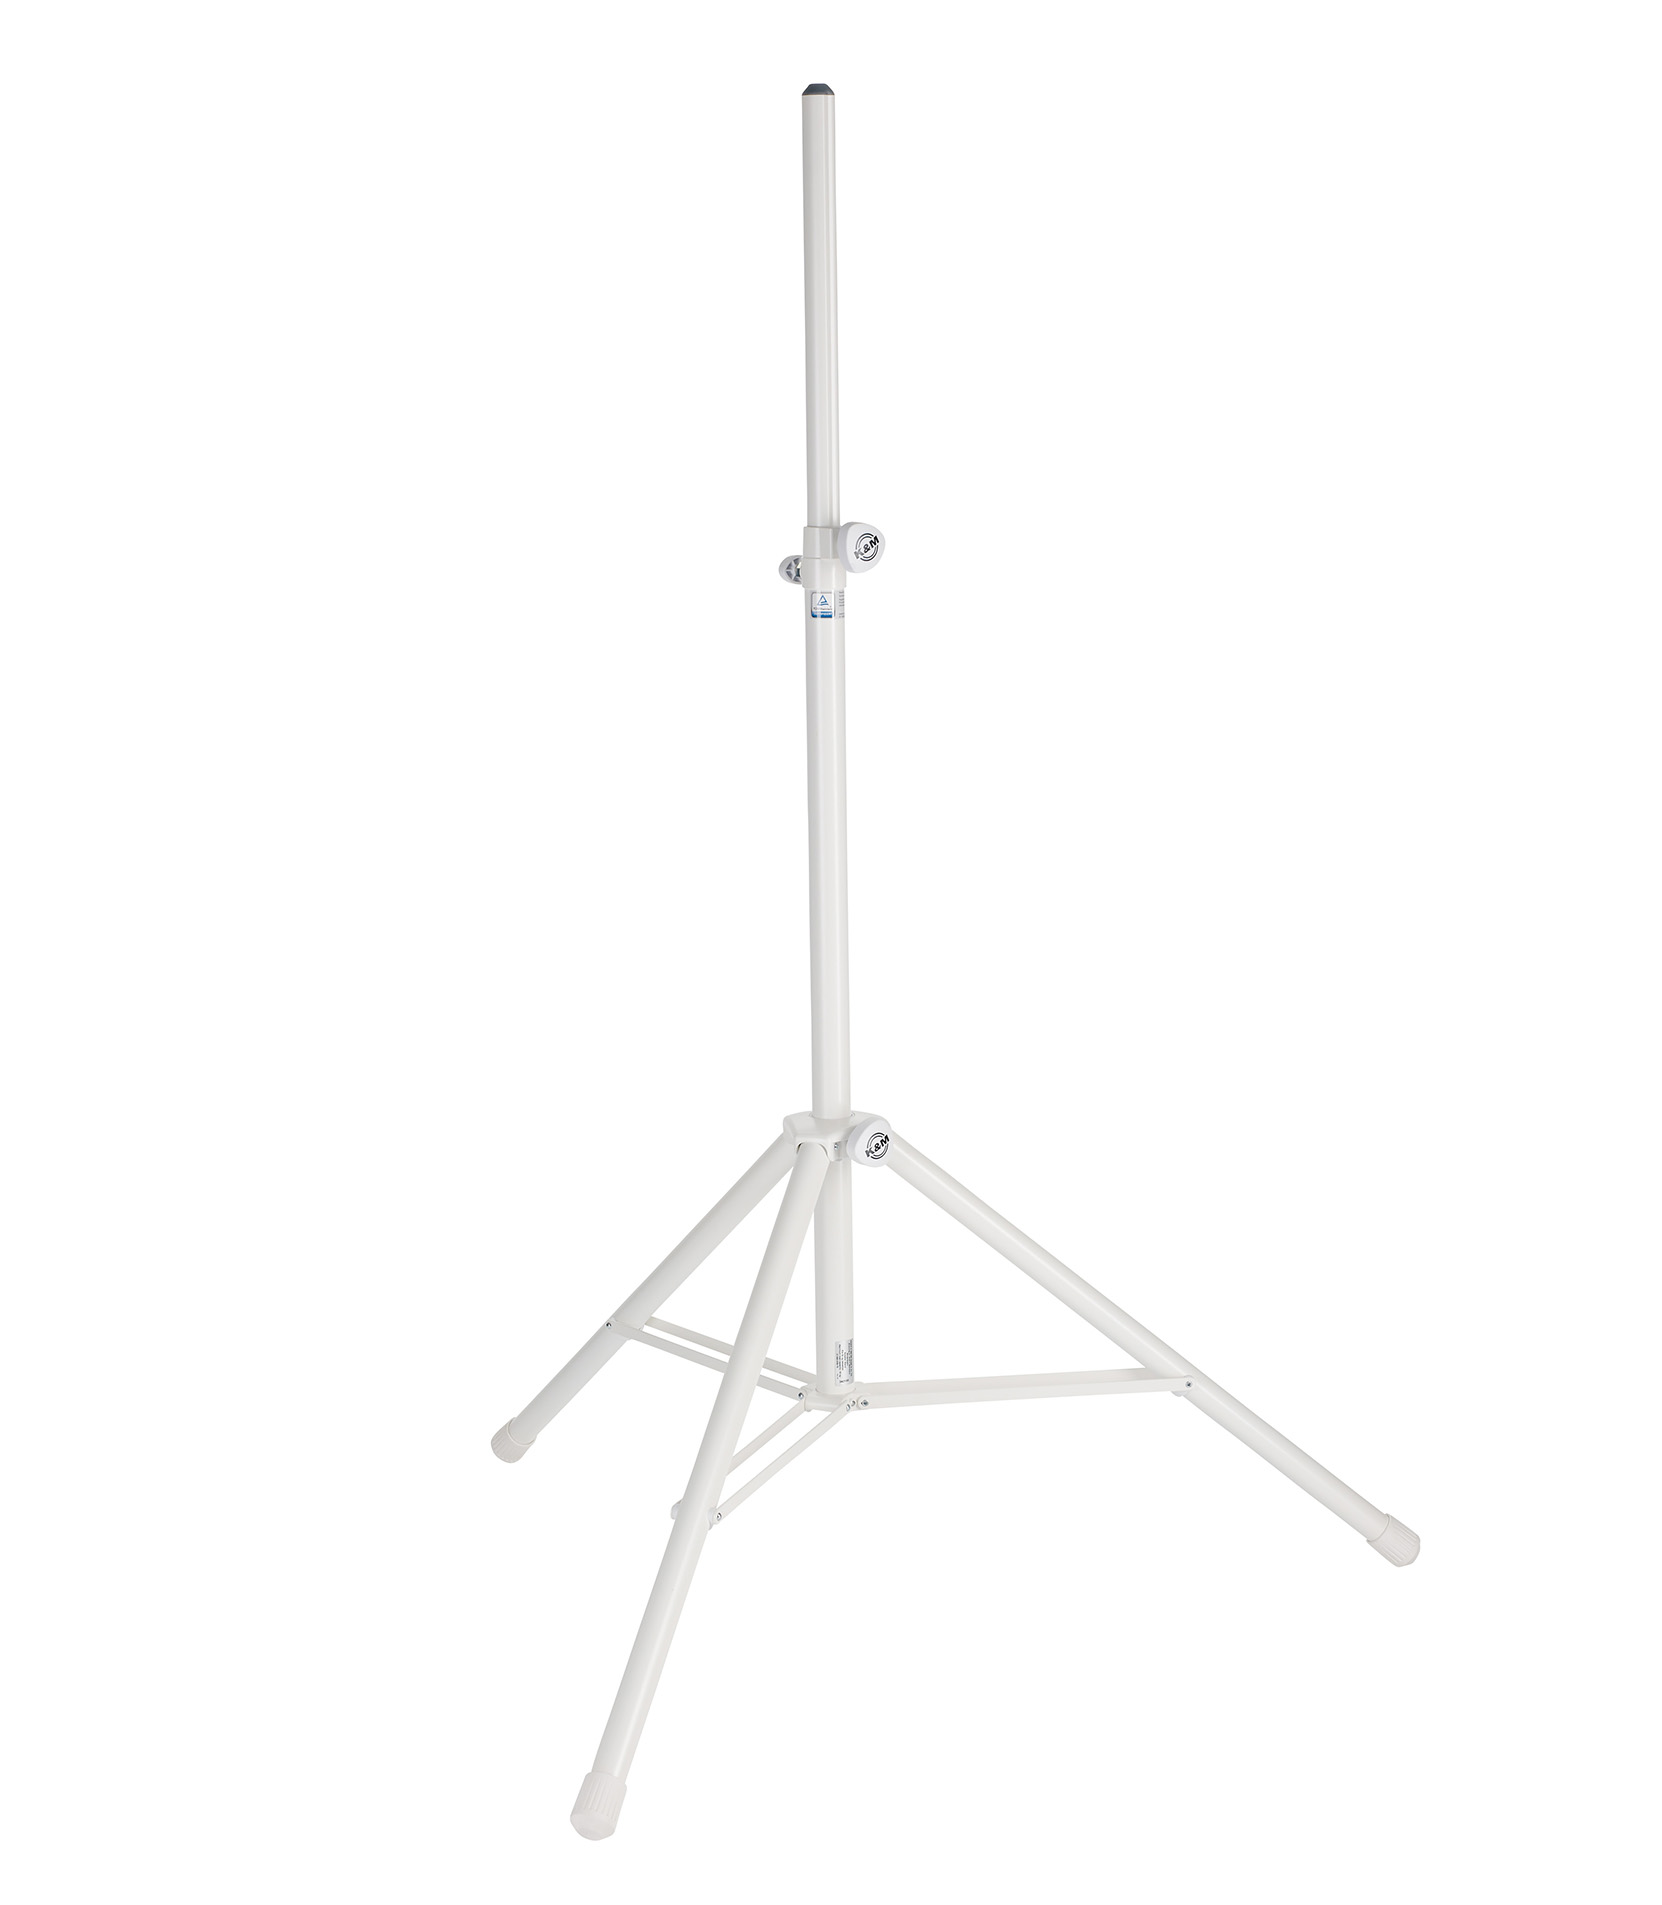 K&M - 21460 009 76 professional speaker stand - Melody House Musical Instruments